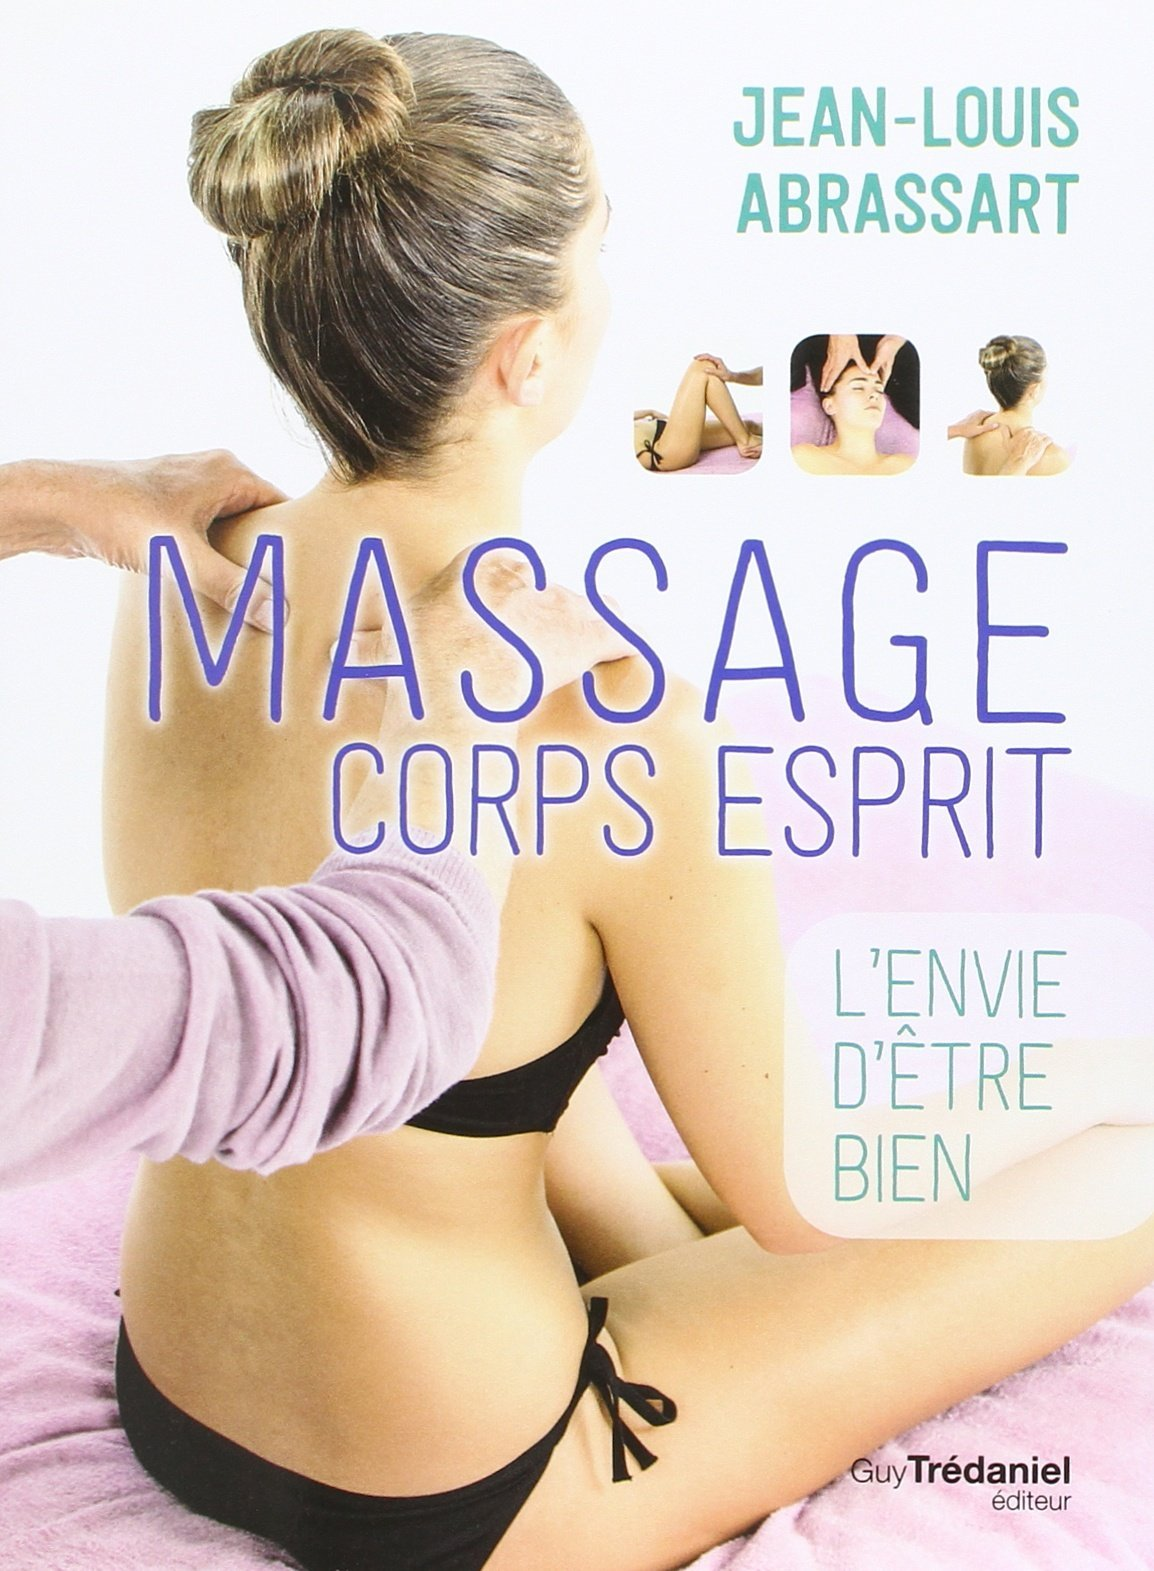 Image OfMassage Corps Esprit (French Edition)